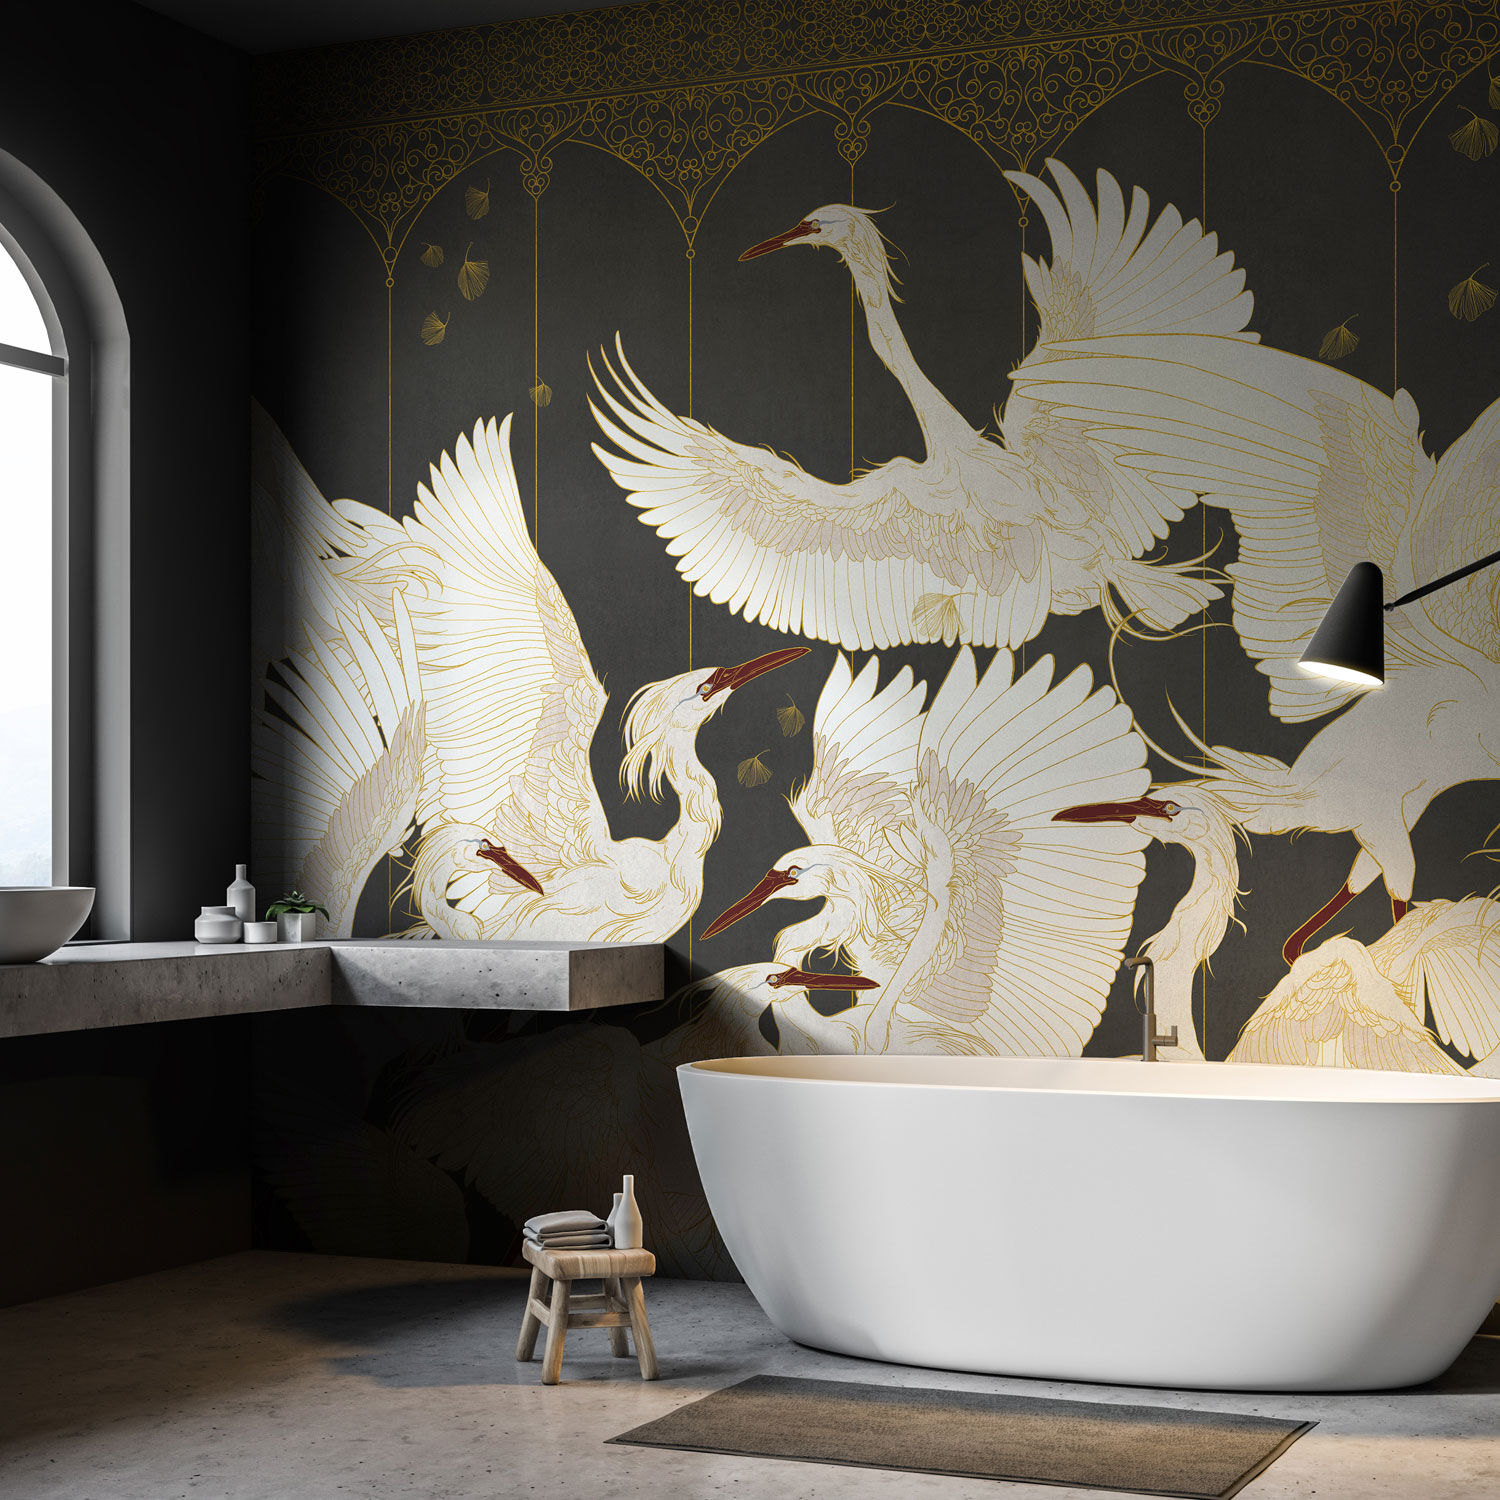 Wallpaper And Decorative Panels Made In Italy